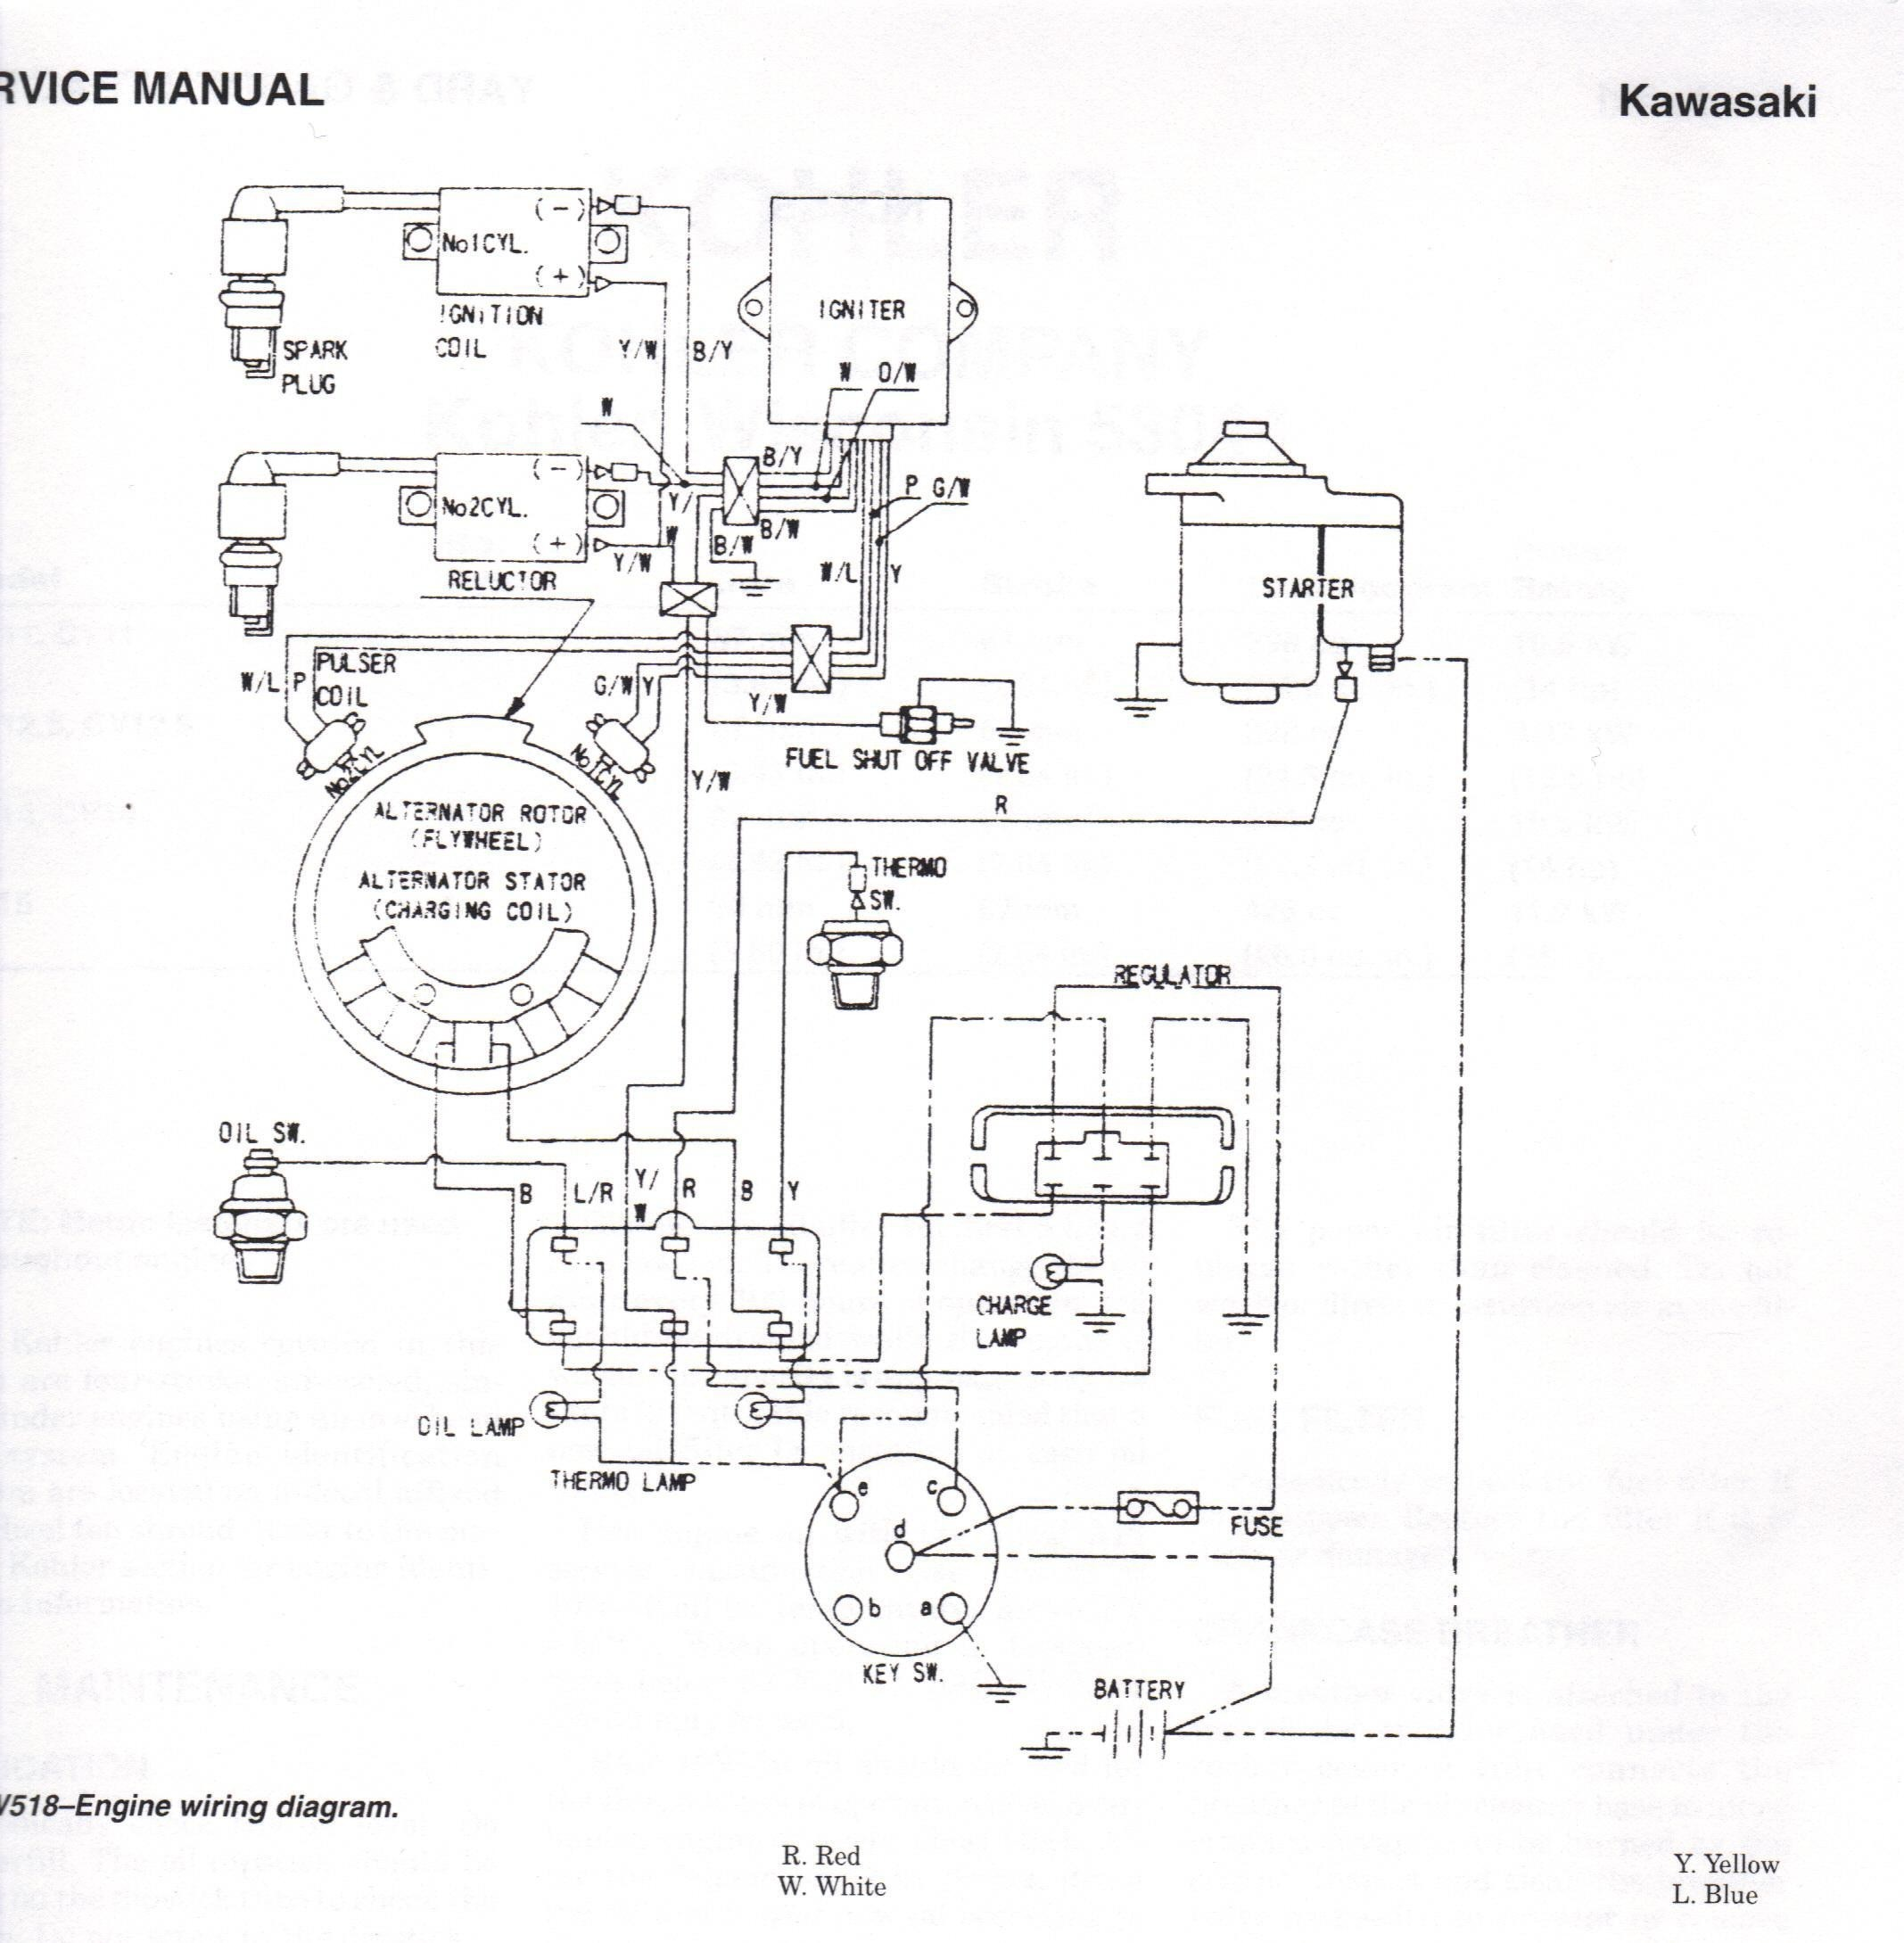 John Deere F510 Starter Wiring Diagram Electrical Schematics Free Image About And Schematic Cx Gator Explore U2022 Wheels